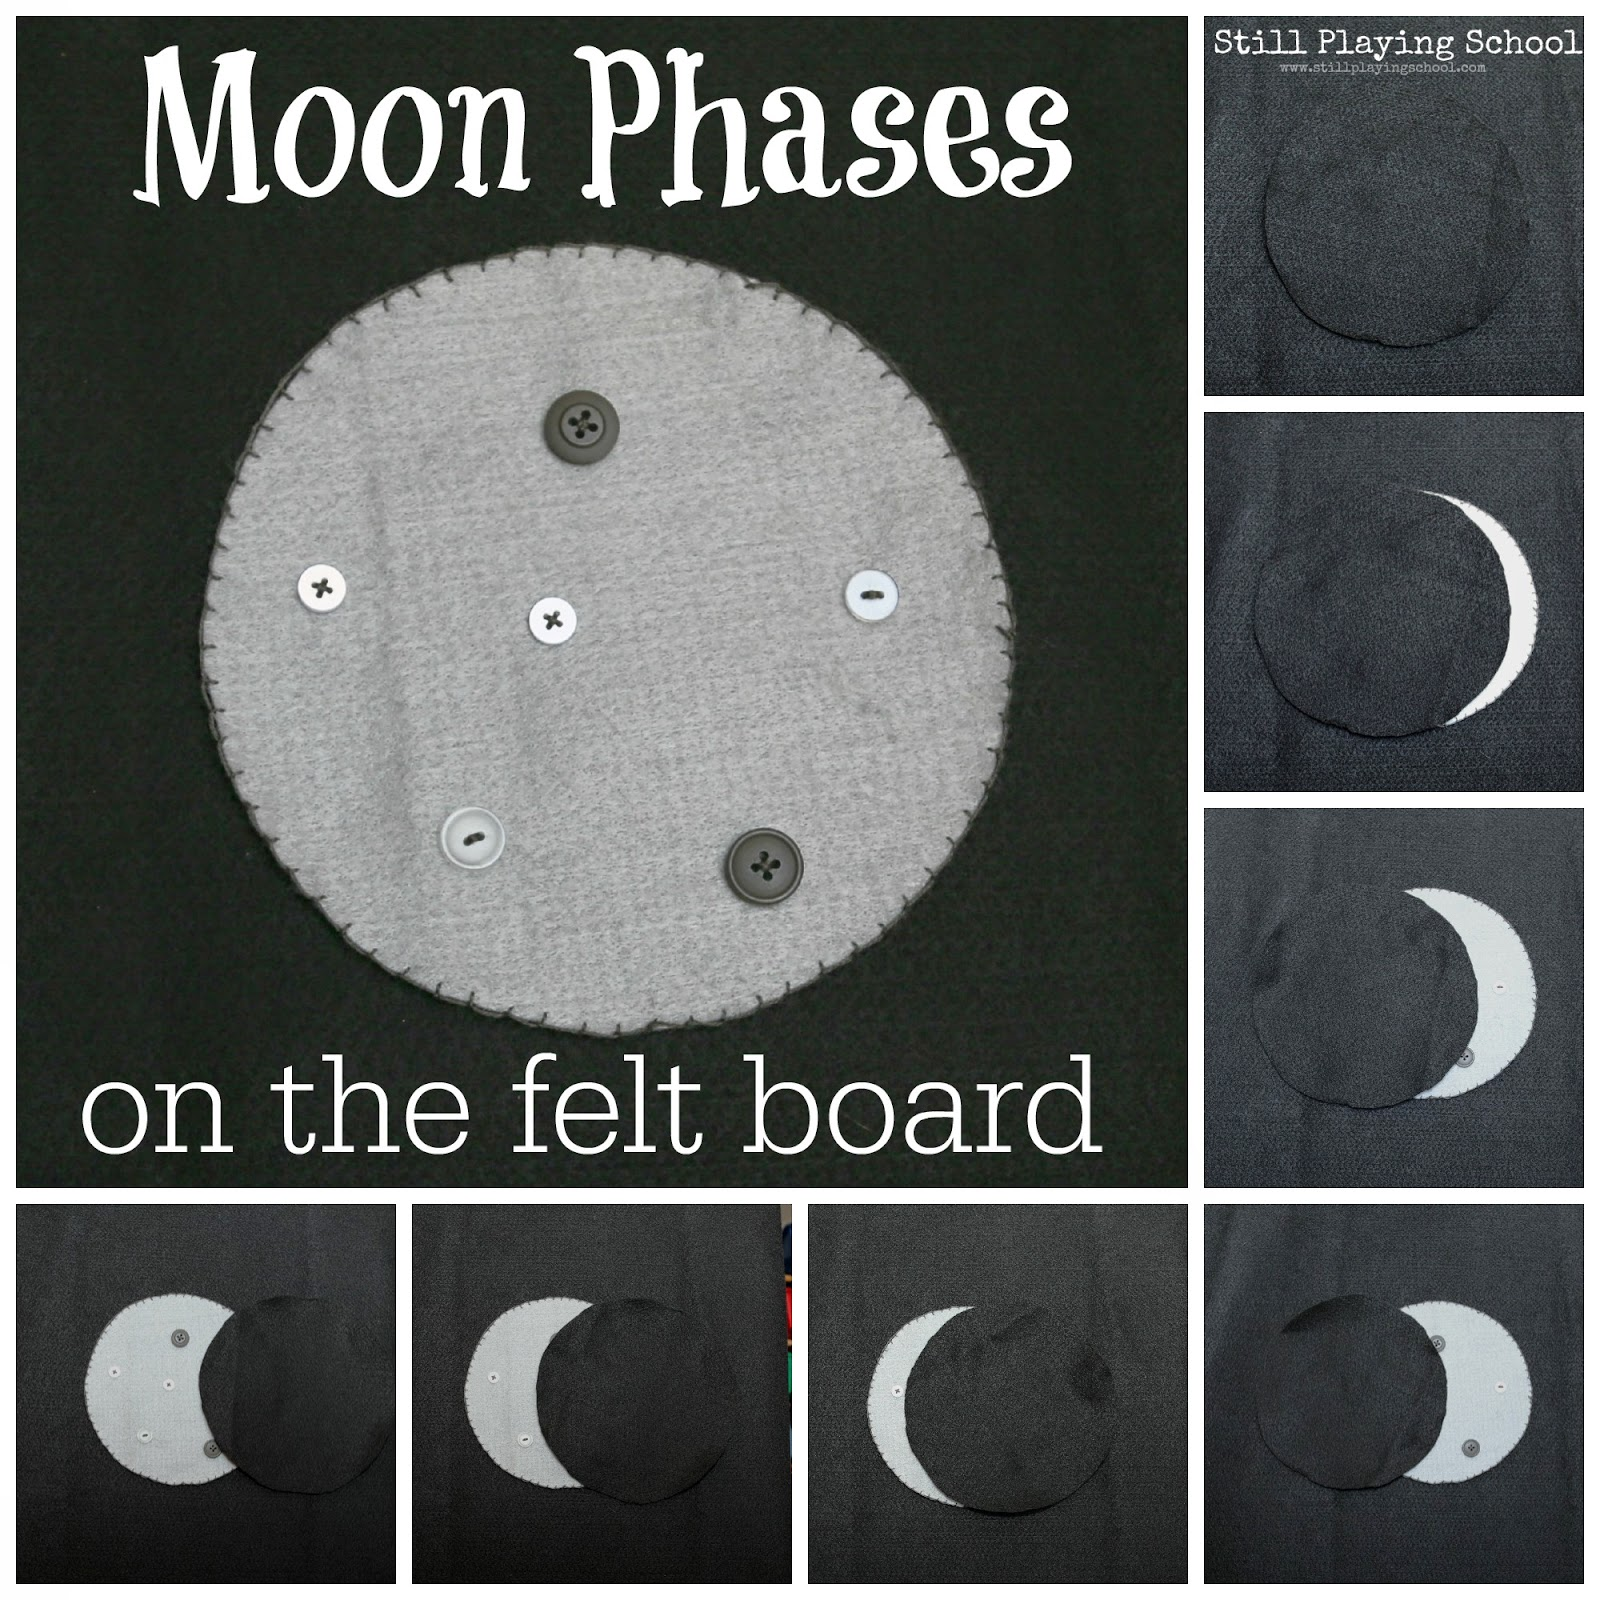 All Moon Phases And Names Moon-phases-felt-board.jpg